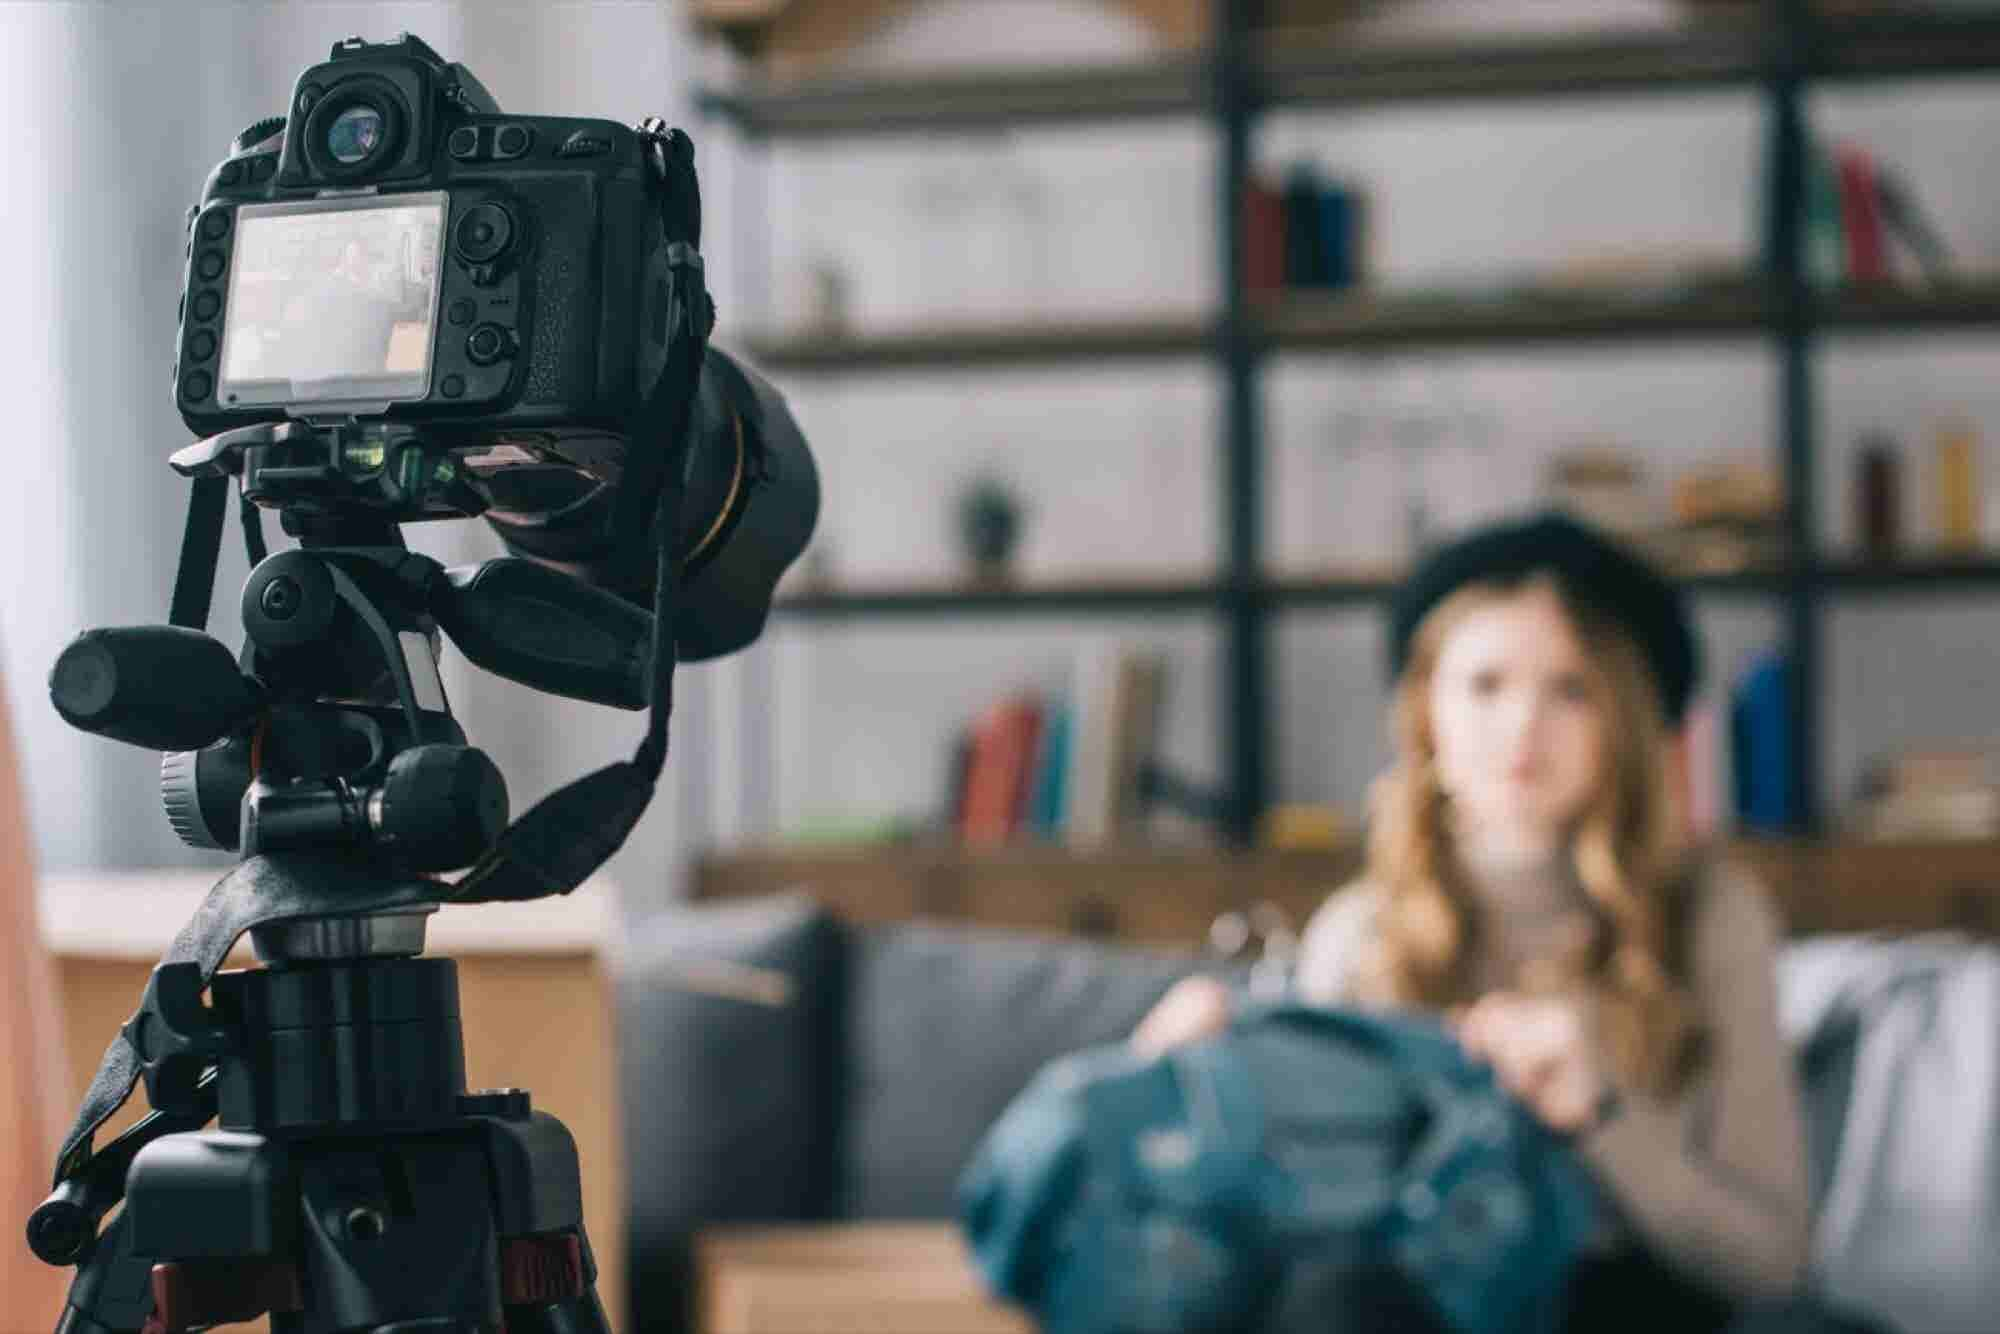 20 Things You Should Know About What It's Really Like to Be a YouTuber